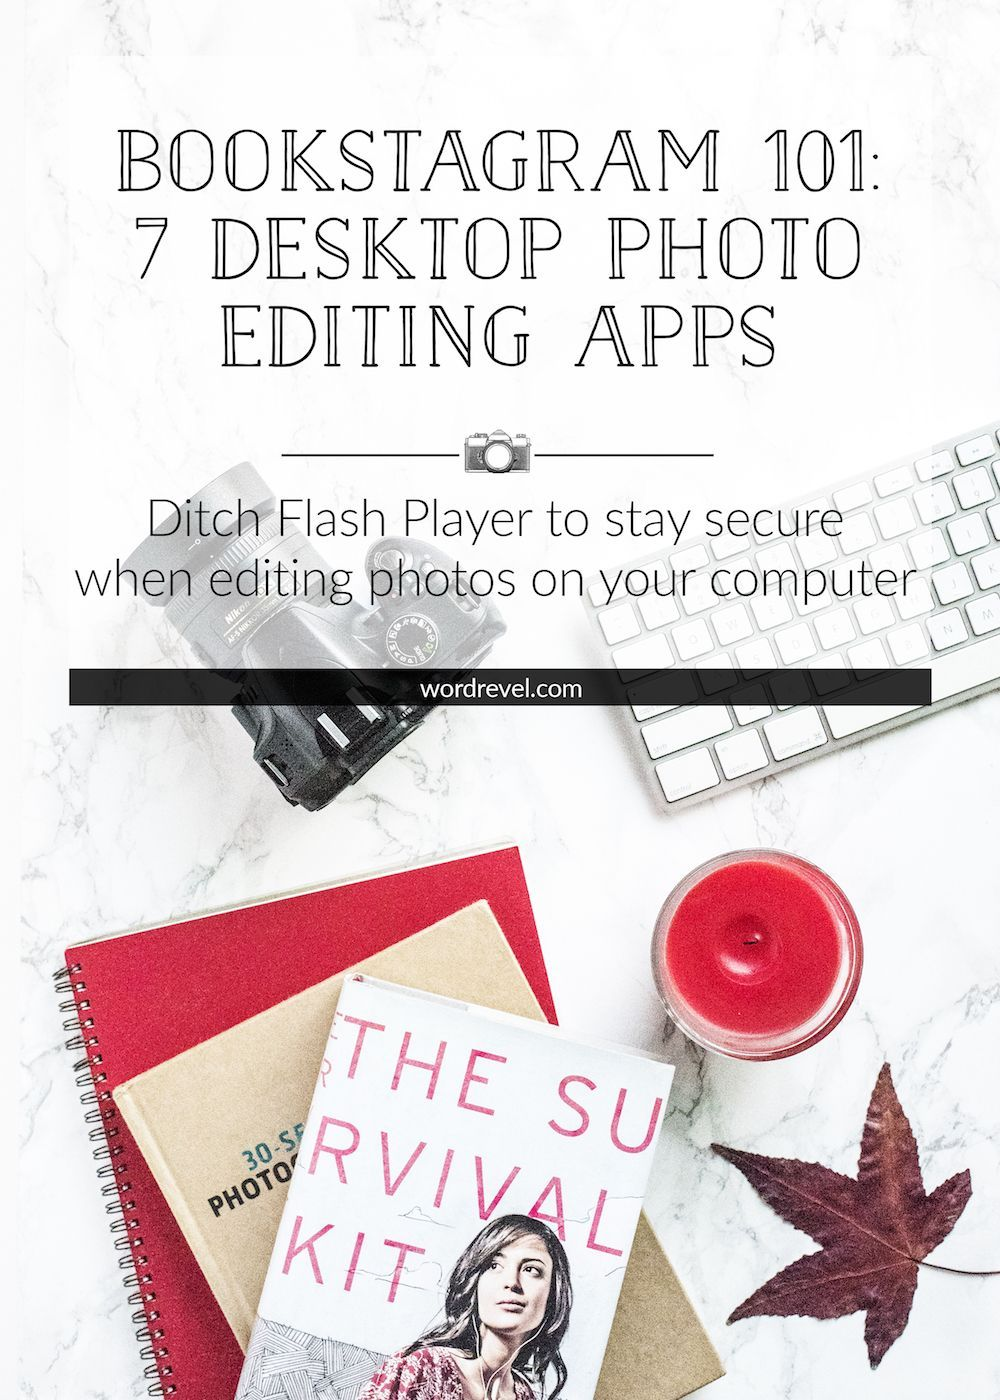 Bookstagram 101 7 Desktop Photo Editing Apps (Word Revel